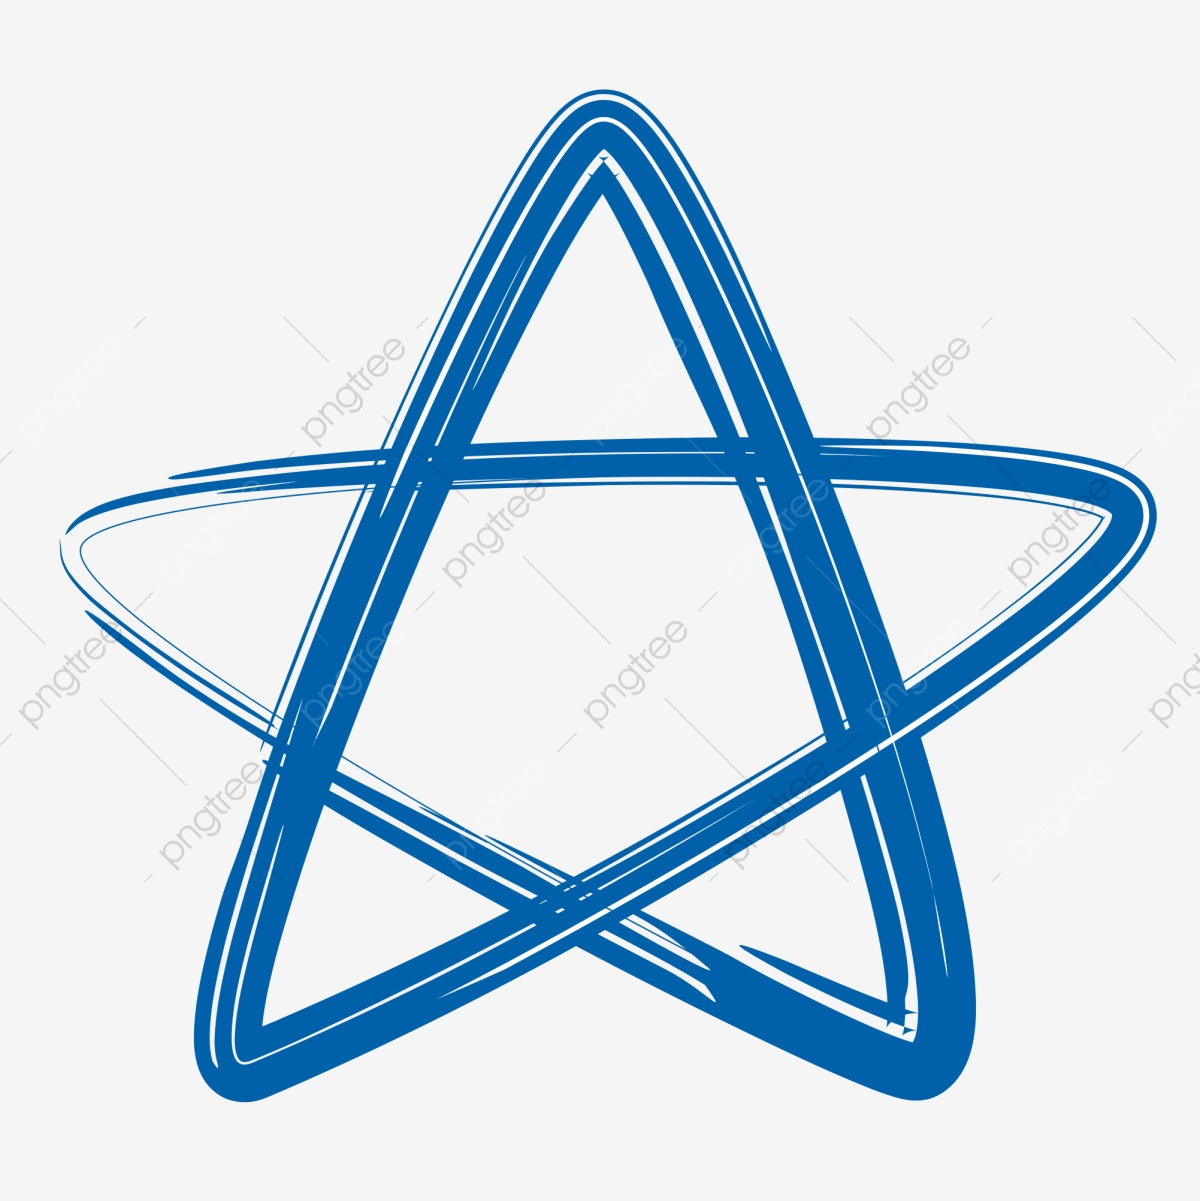 2b9224054e295 Commercial use resource. Upgrade to Premium plan and get license  authorization.UpgradeNow · pentagram blue five-pointed star ...